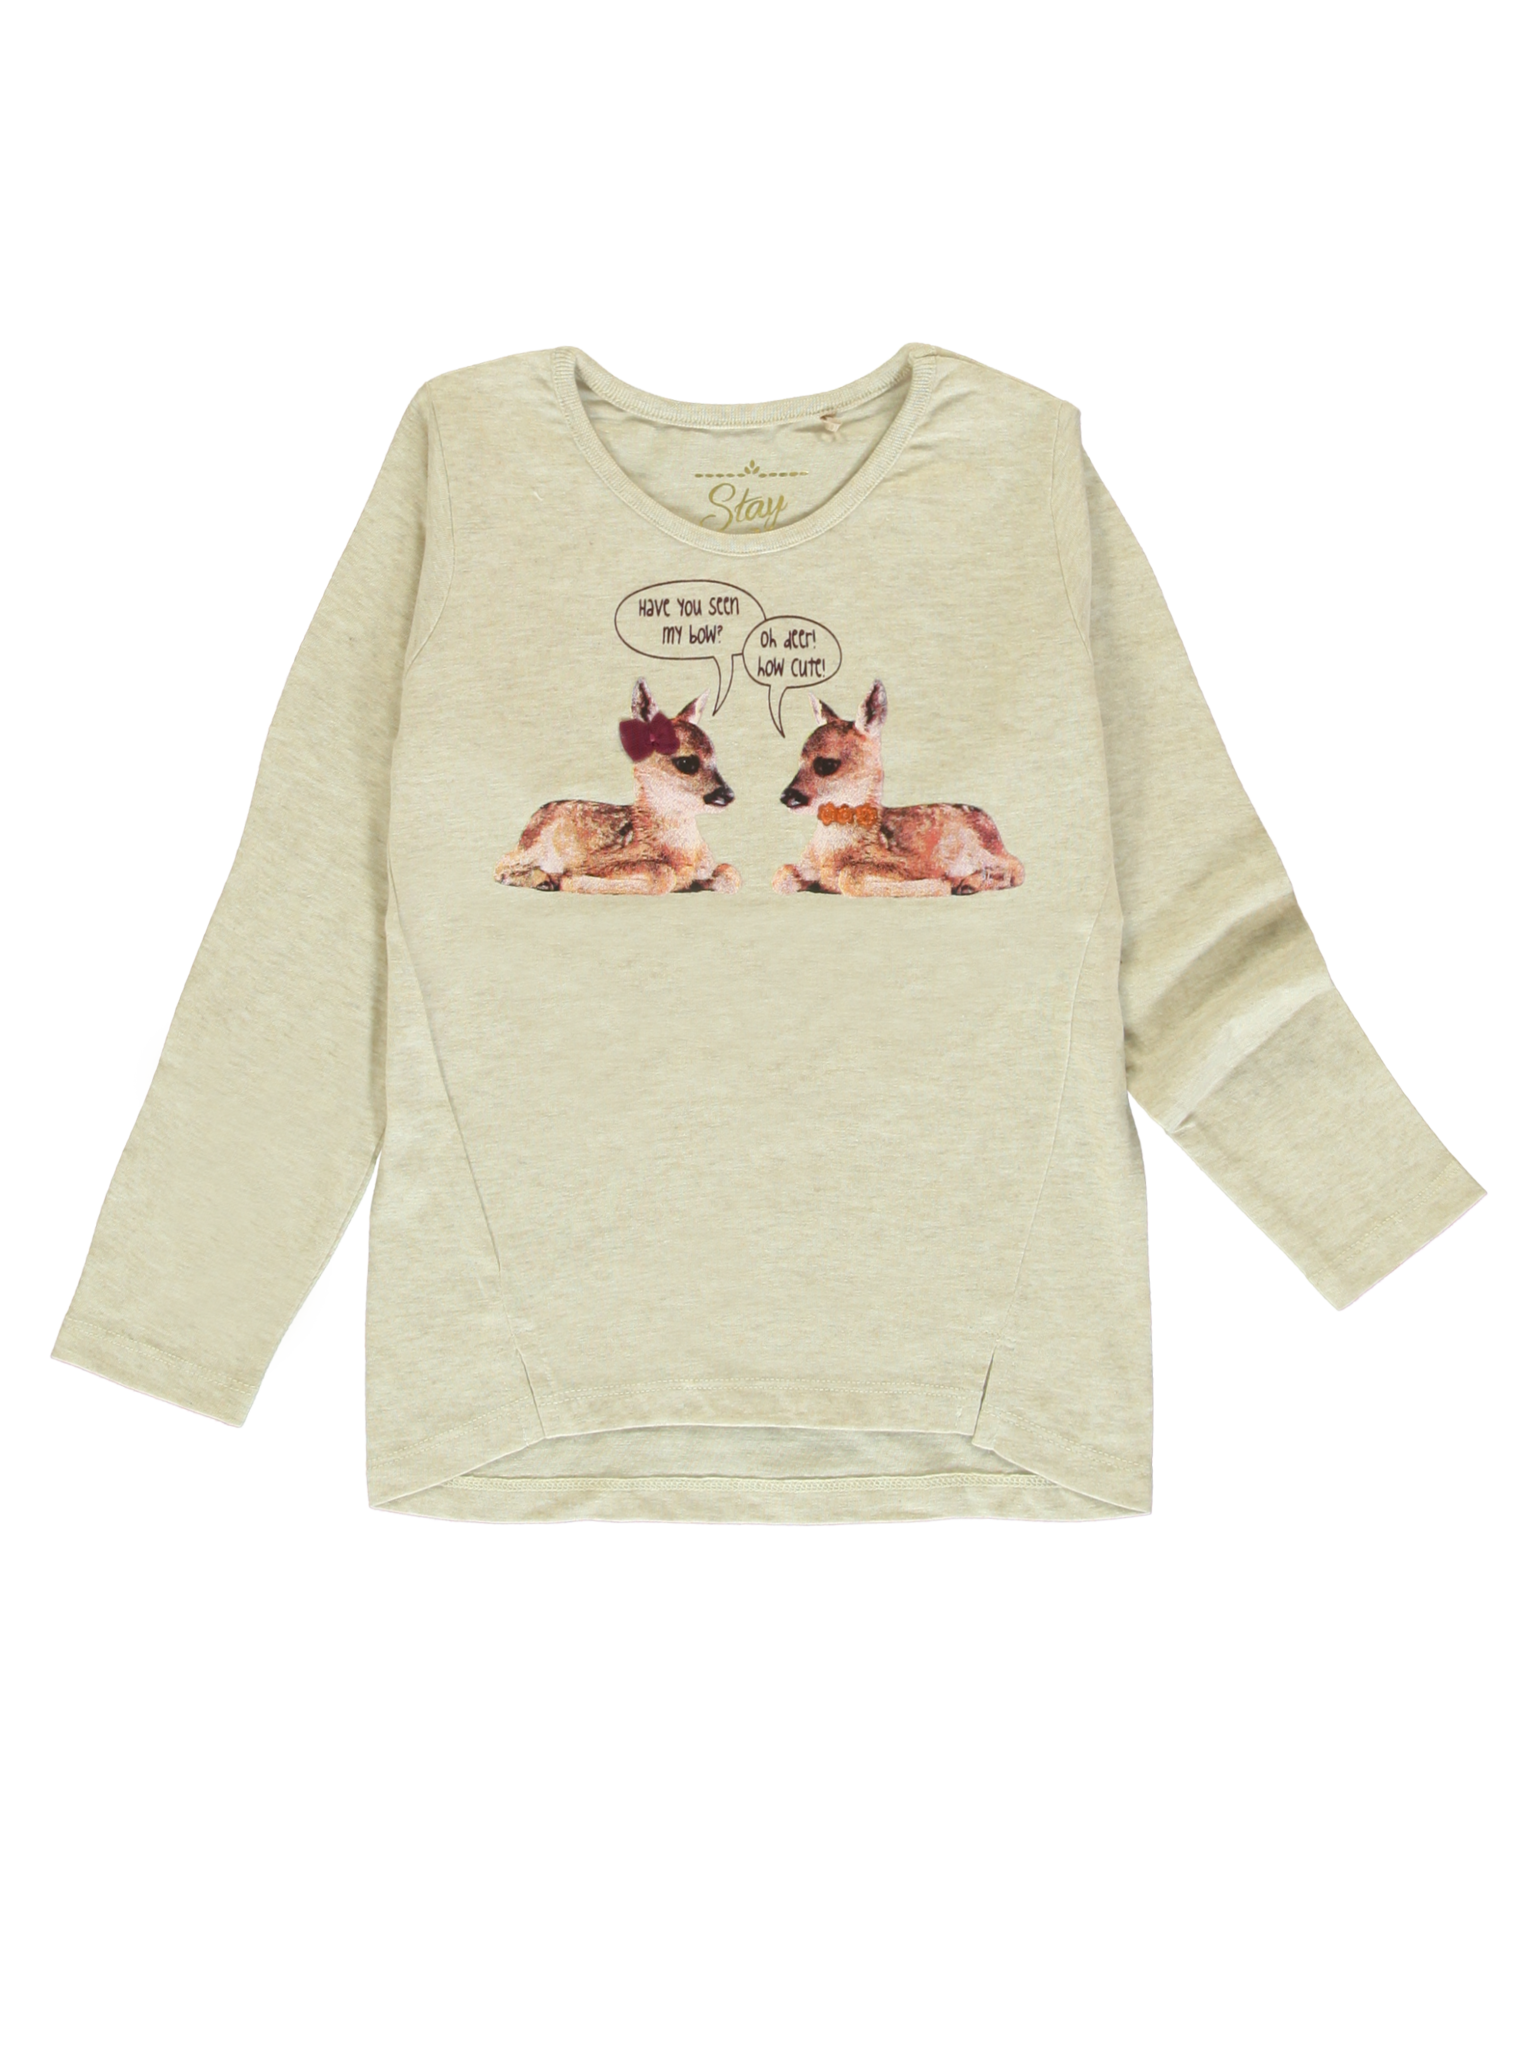 All Brands | Winterproducts Small Girls | T-shirt | 12 pcs/box